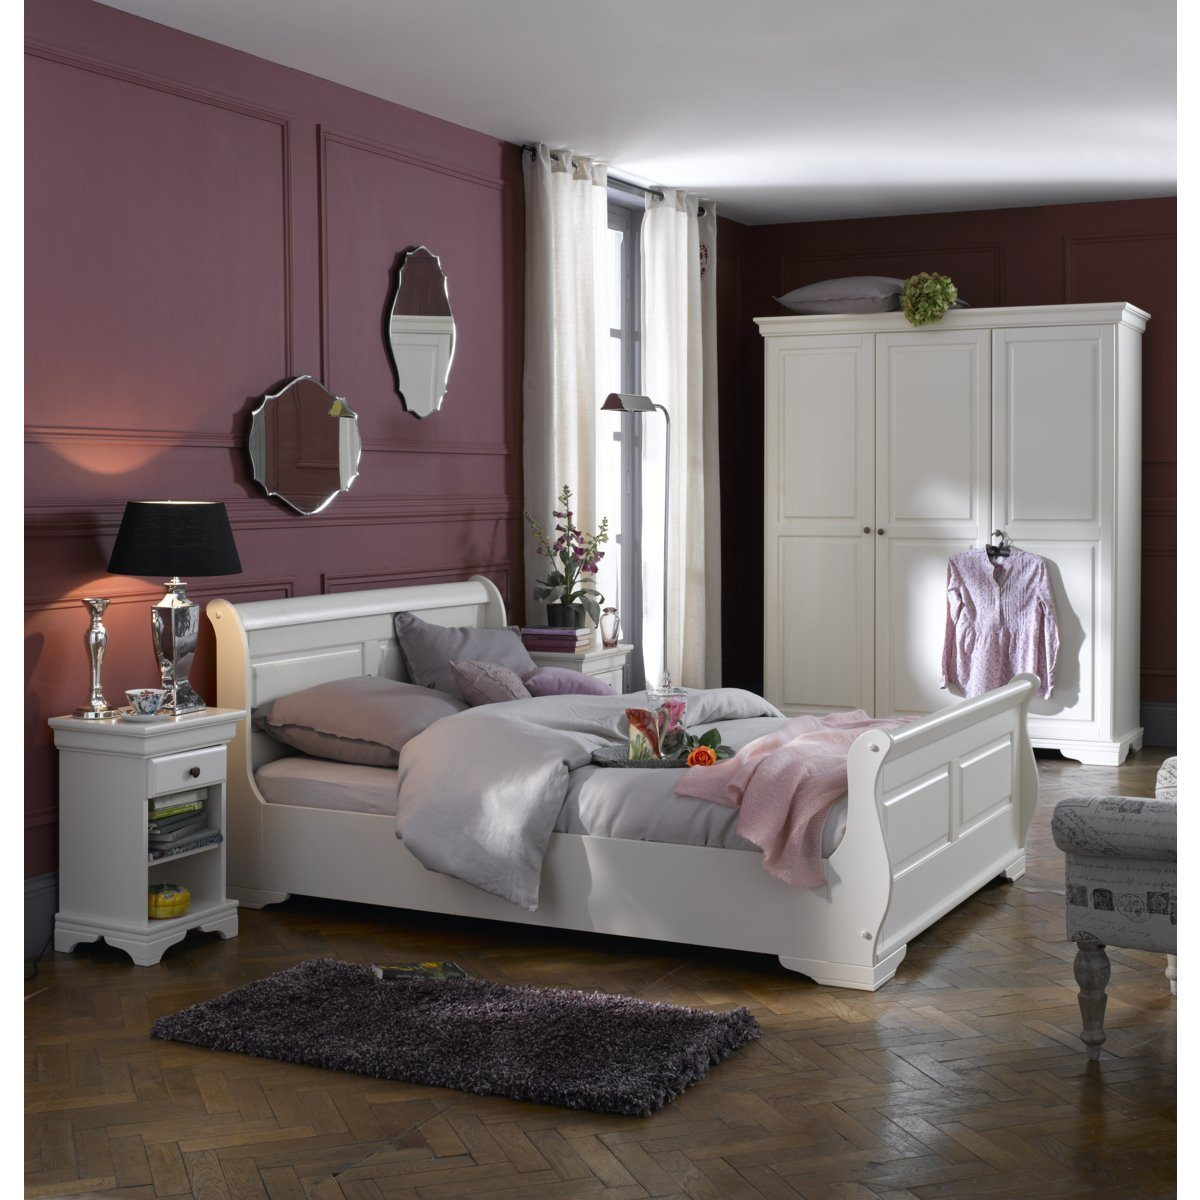 chambre couleur vieux rose. Black Bedroom Furniture Sets. Home Design Ideas